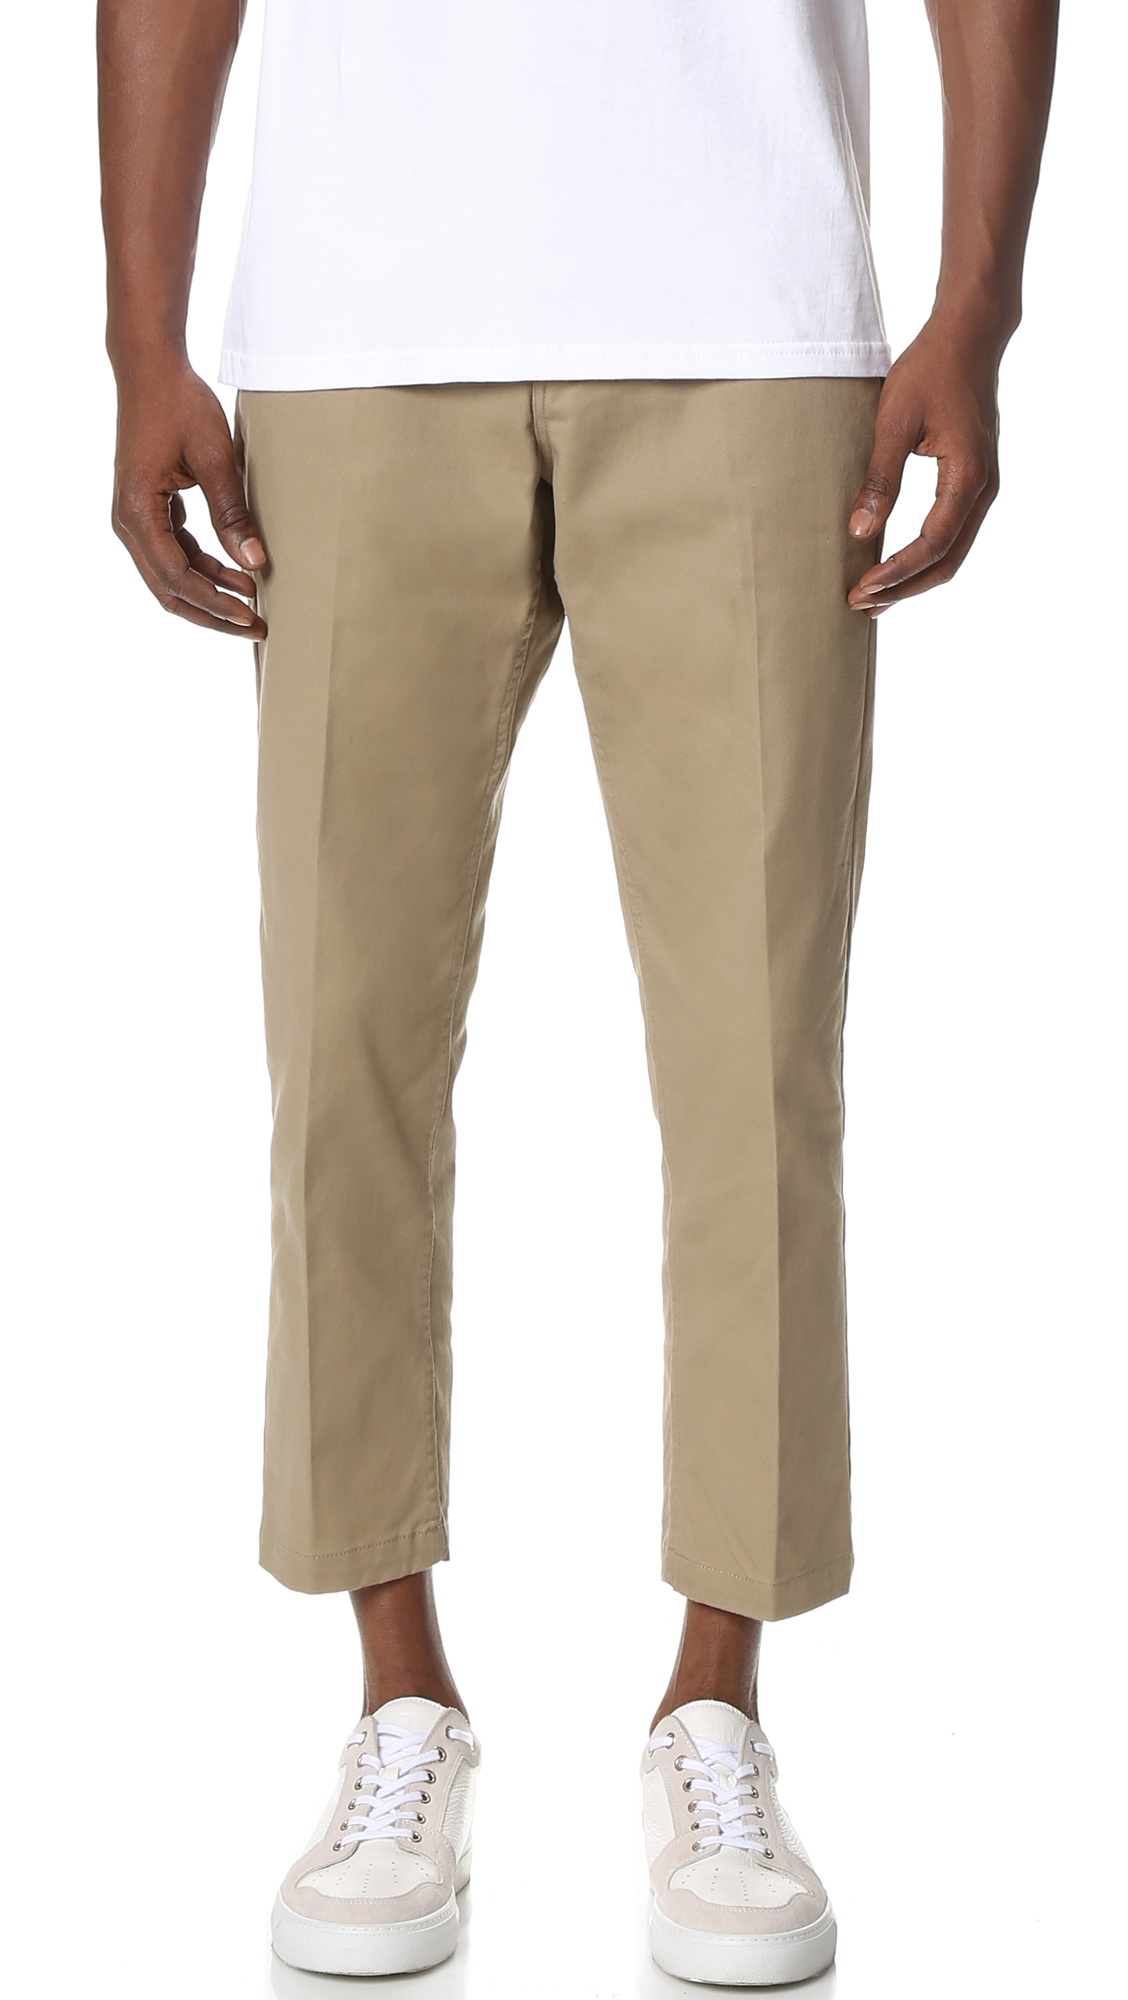 Inexpensive Online TROUSERS - Shorts Obey Discounts Online 3sHT6v